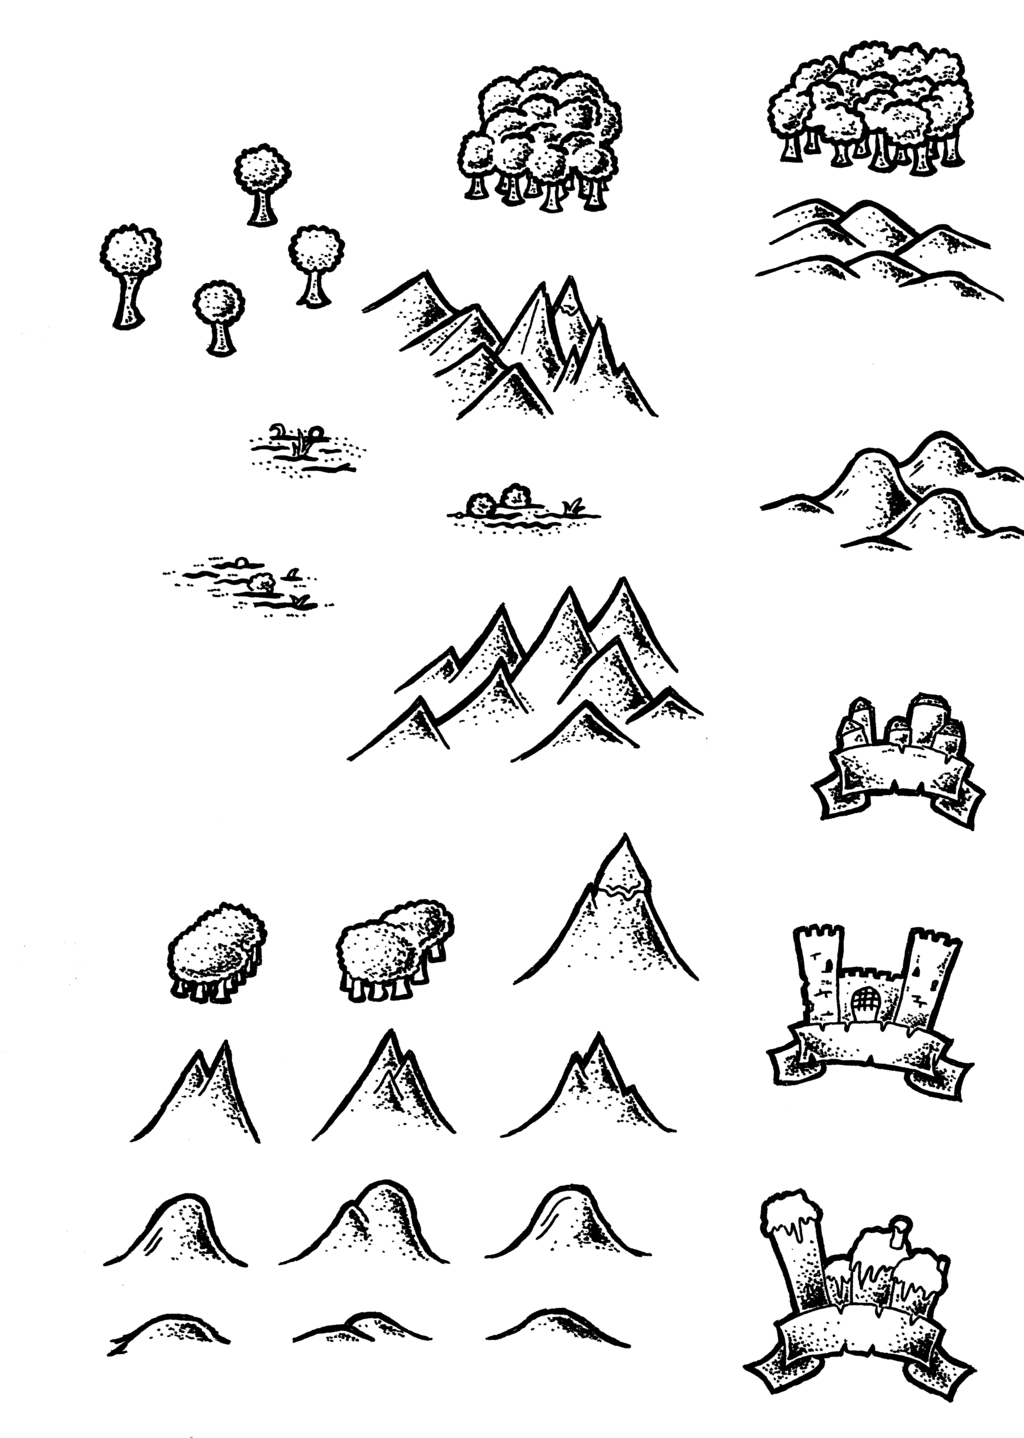 Black and white map symbols overland 2 by darthasparagusiantart black and white map symbols overland 2 by darthasparagusiantart on deviantart gumiabroncs Gallery